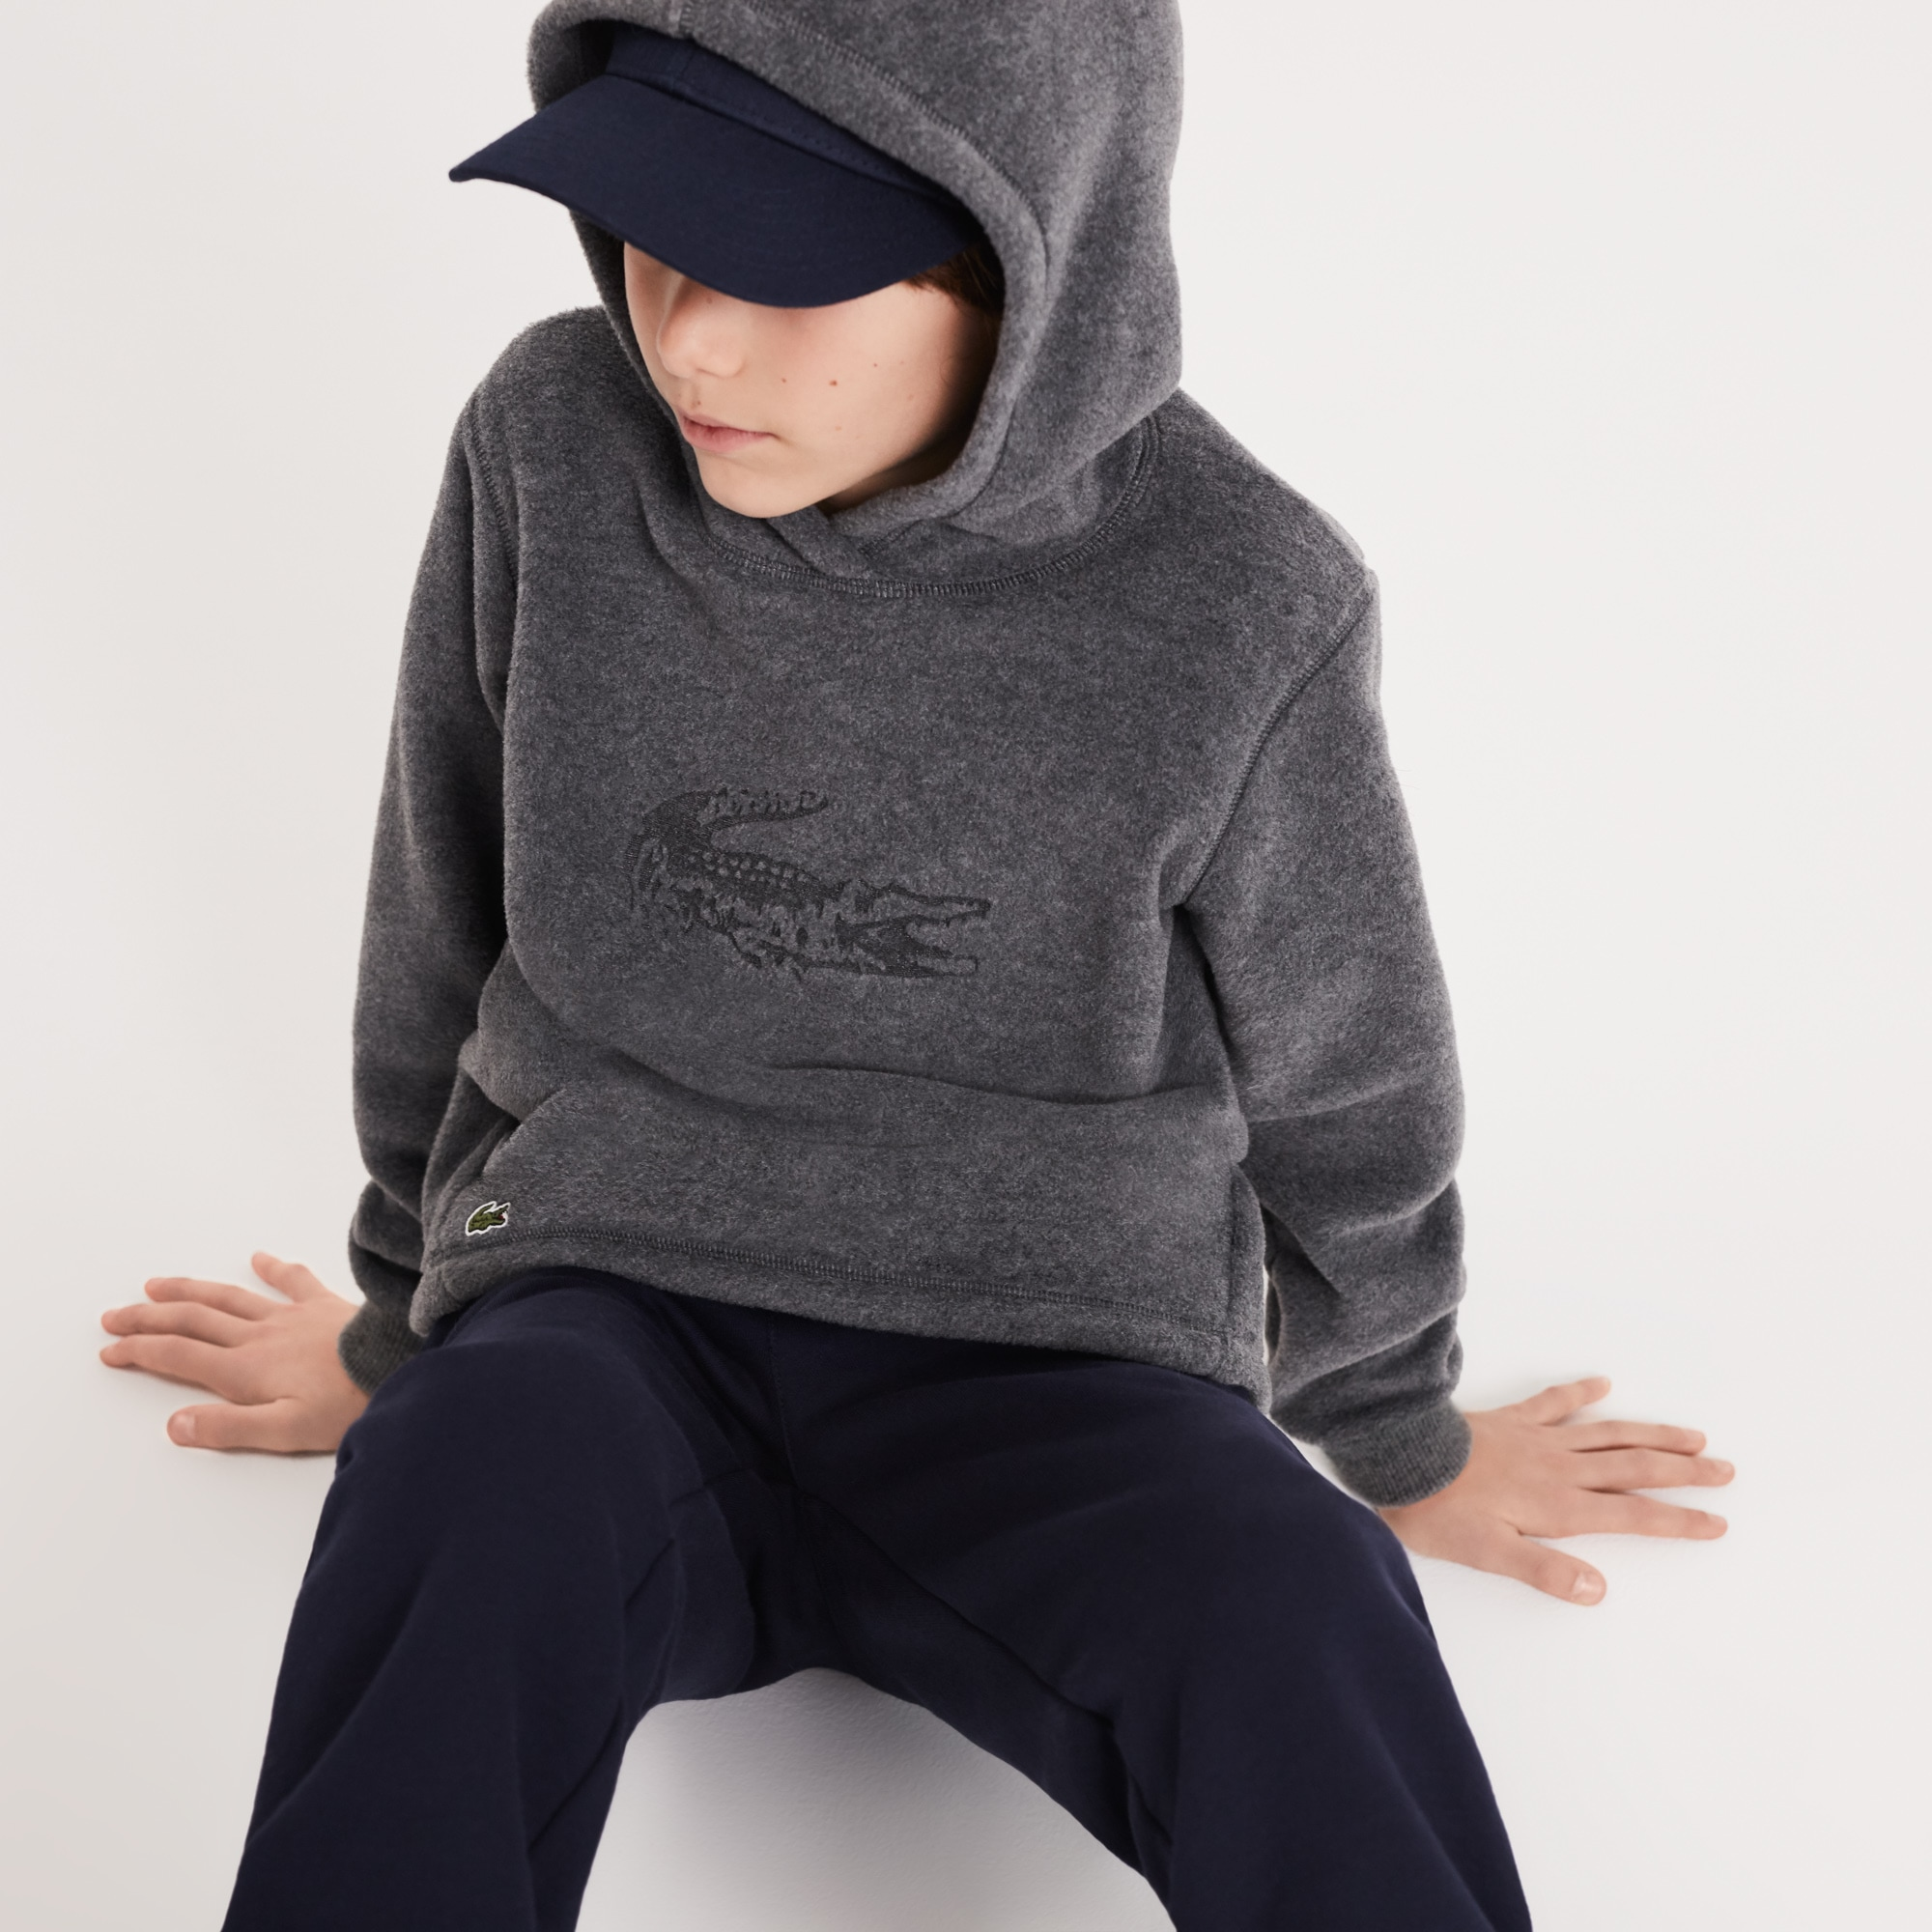 Boys' Oversized Crocodile Hooded Fleece Sweatshirt